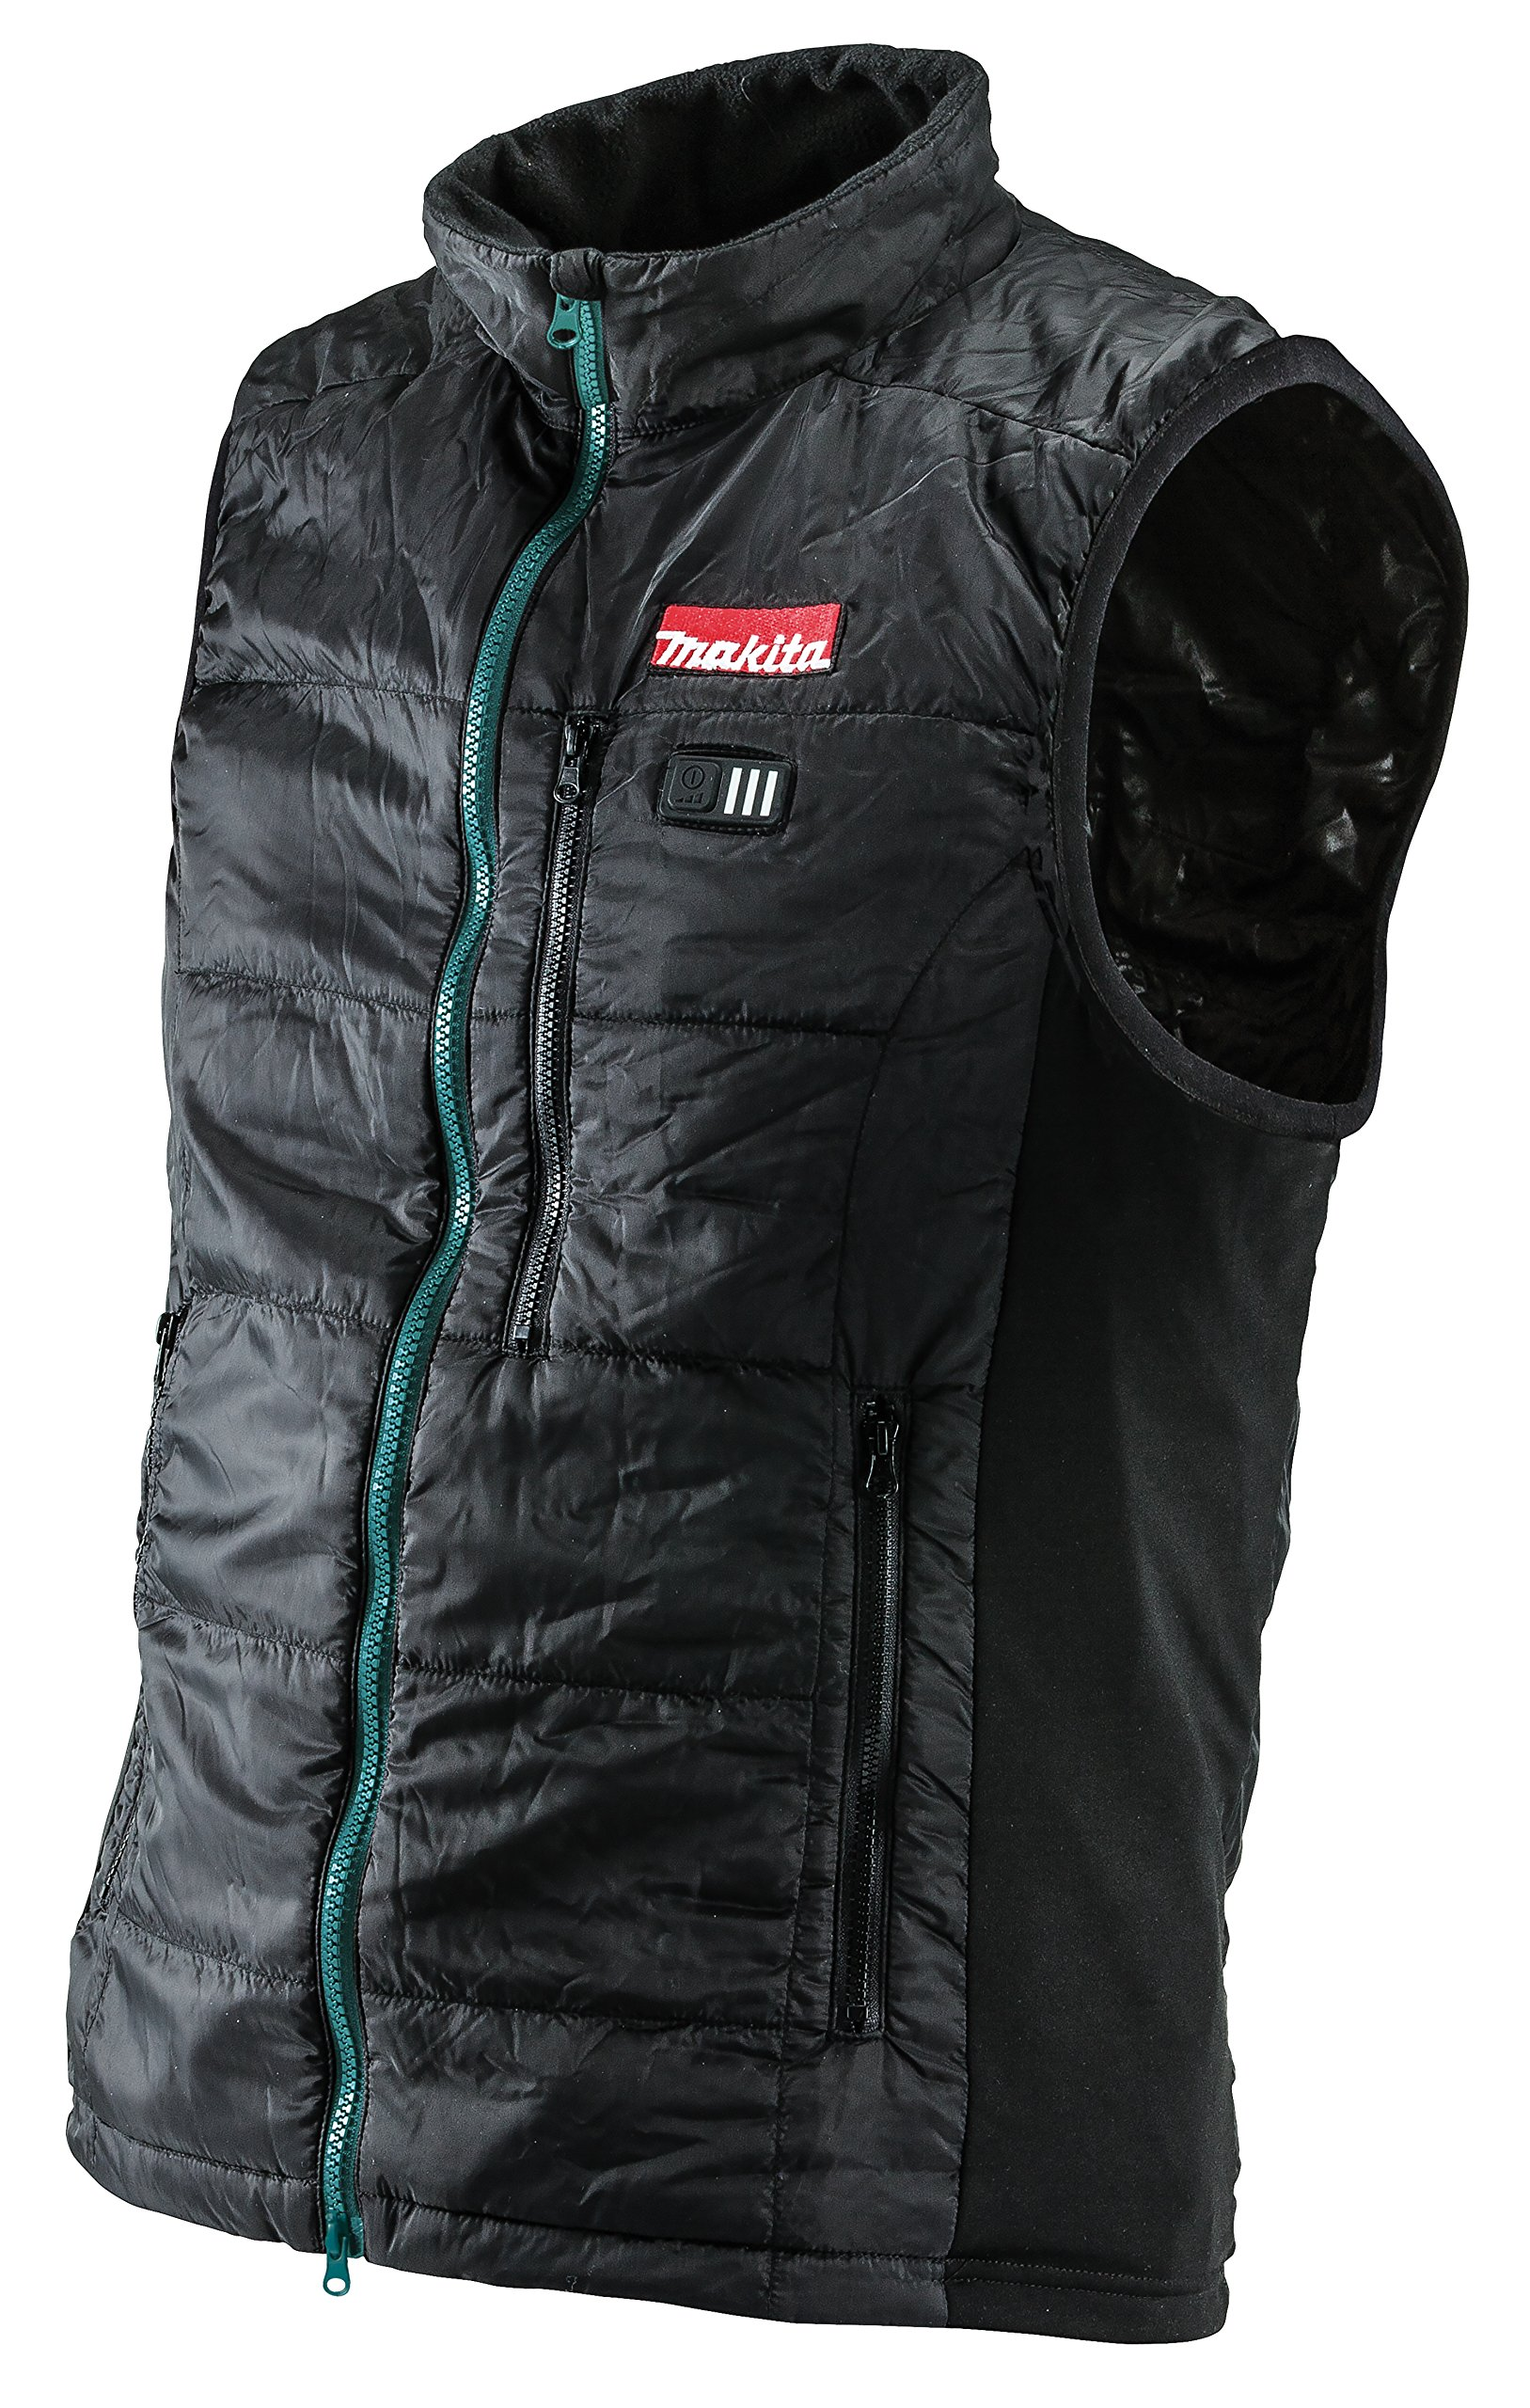 Makita DCV200ZL 18V LXT Lithium-Ion Cordless Heated Vest Only, Large, Black by Makita (Image #1)